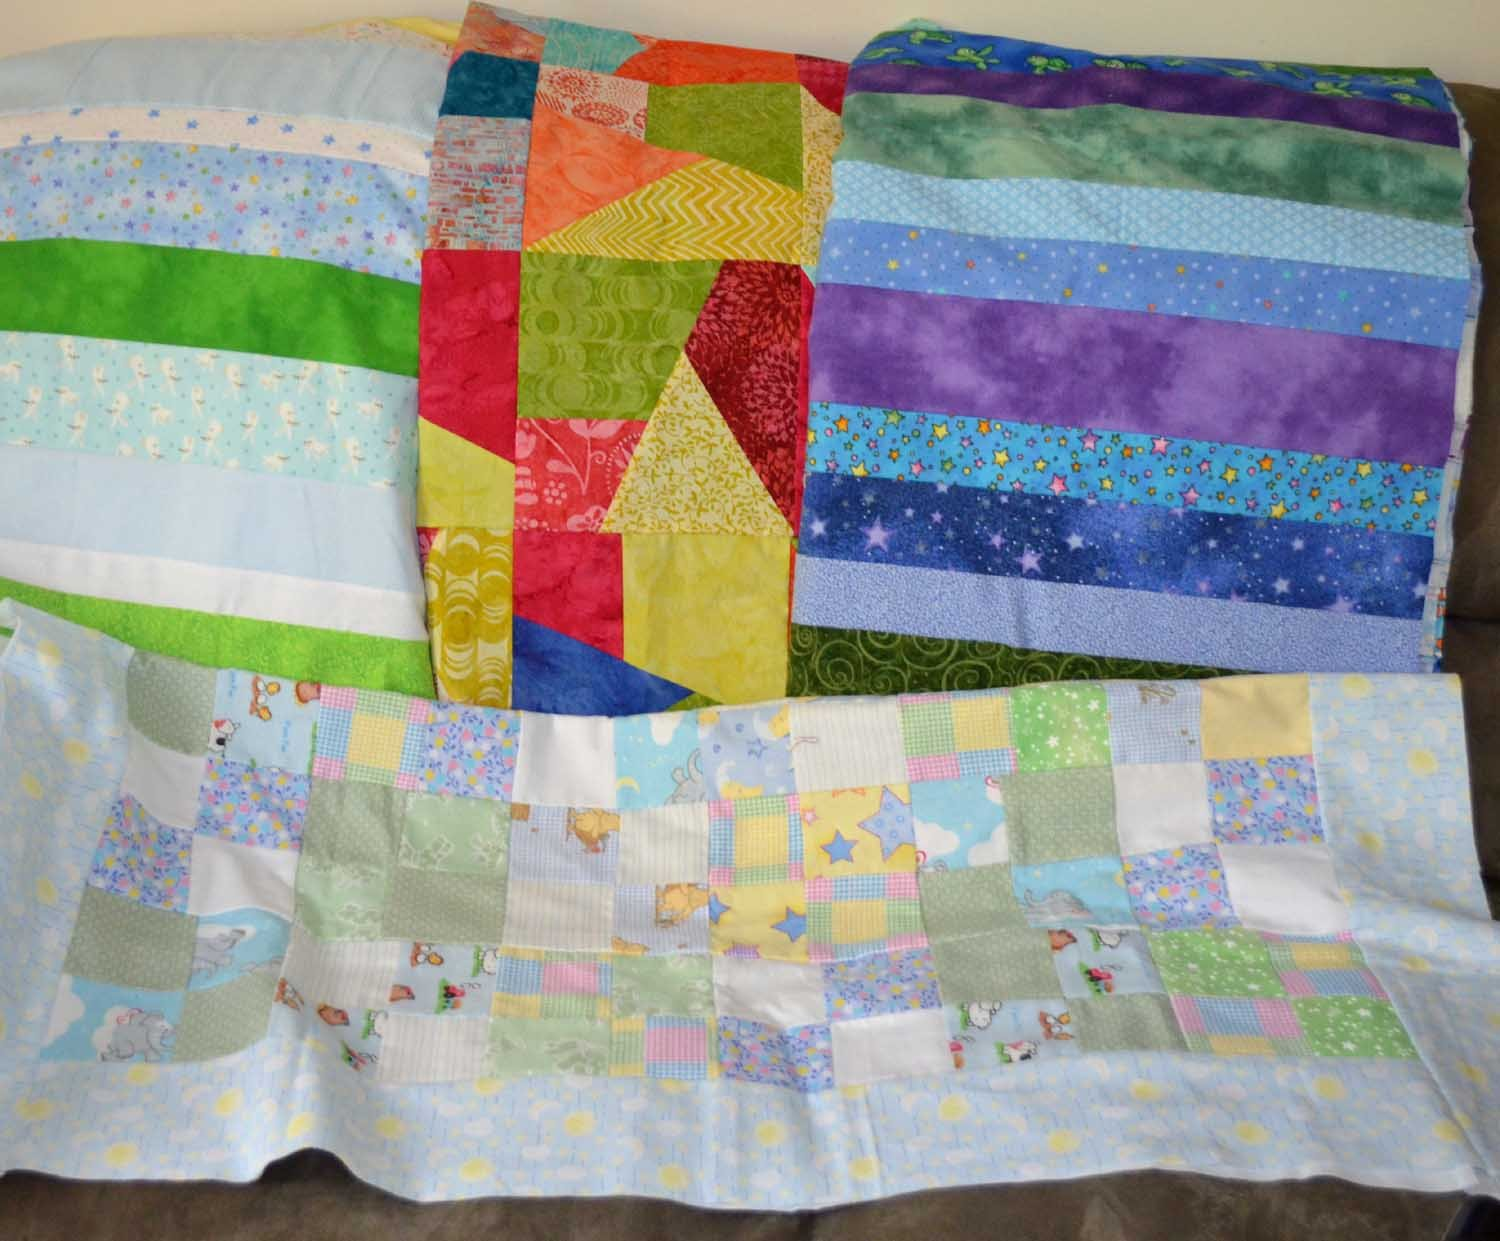 Helping Hands quilt tops